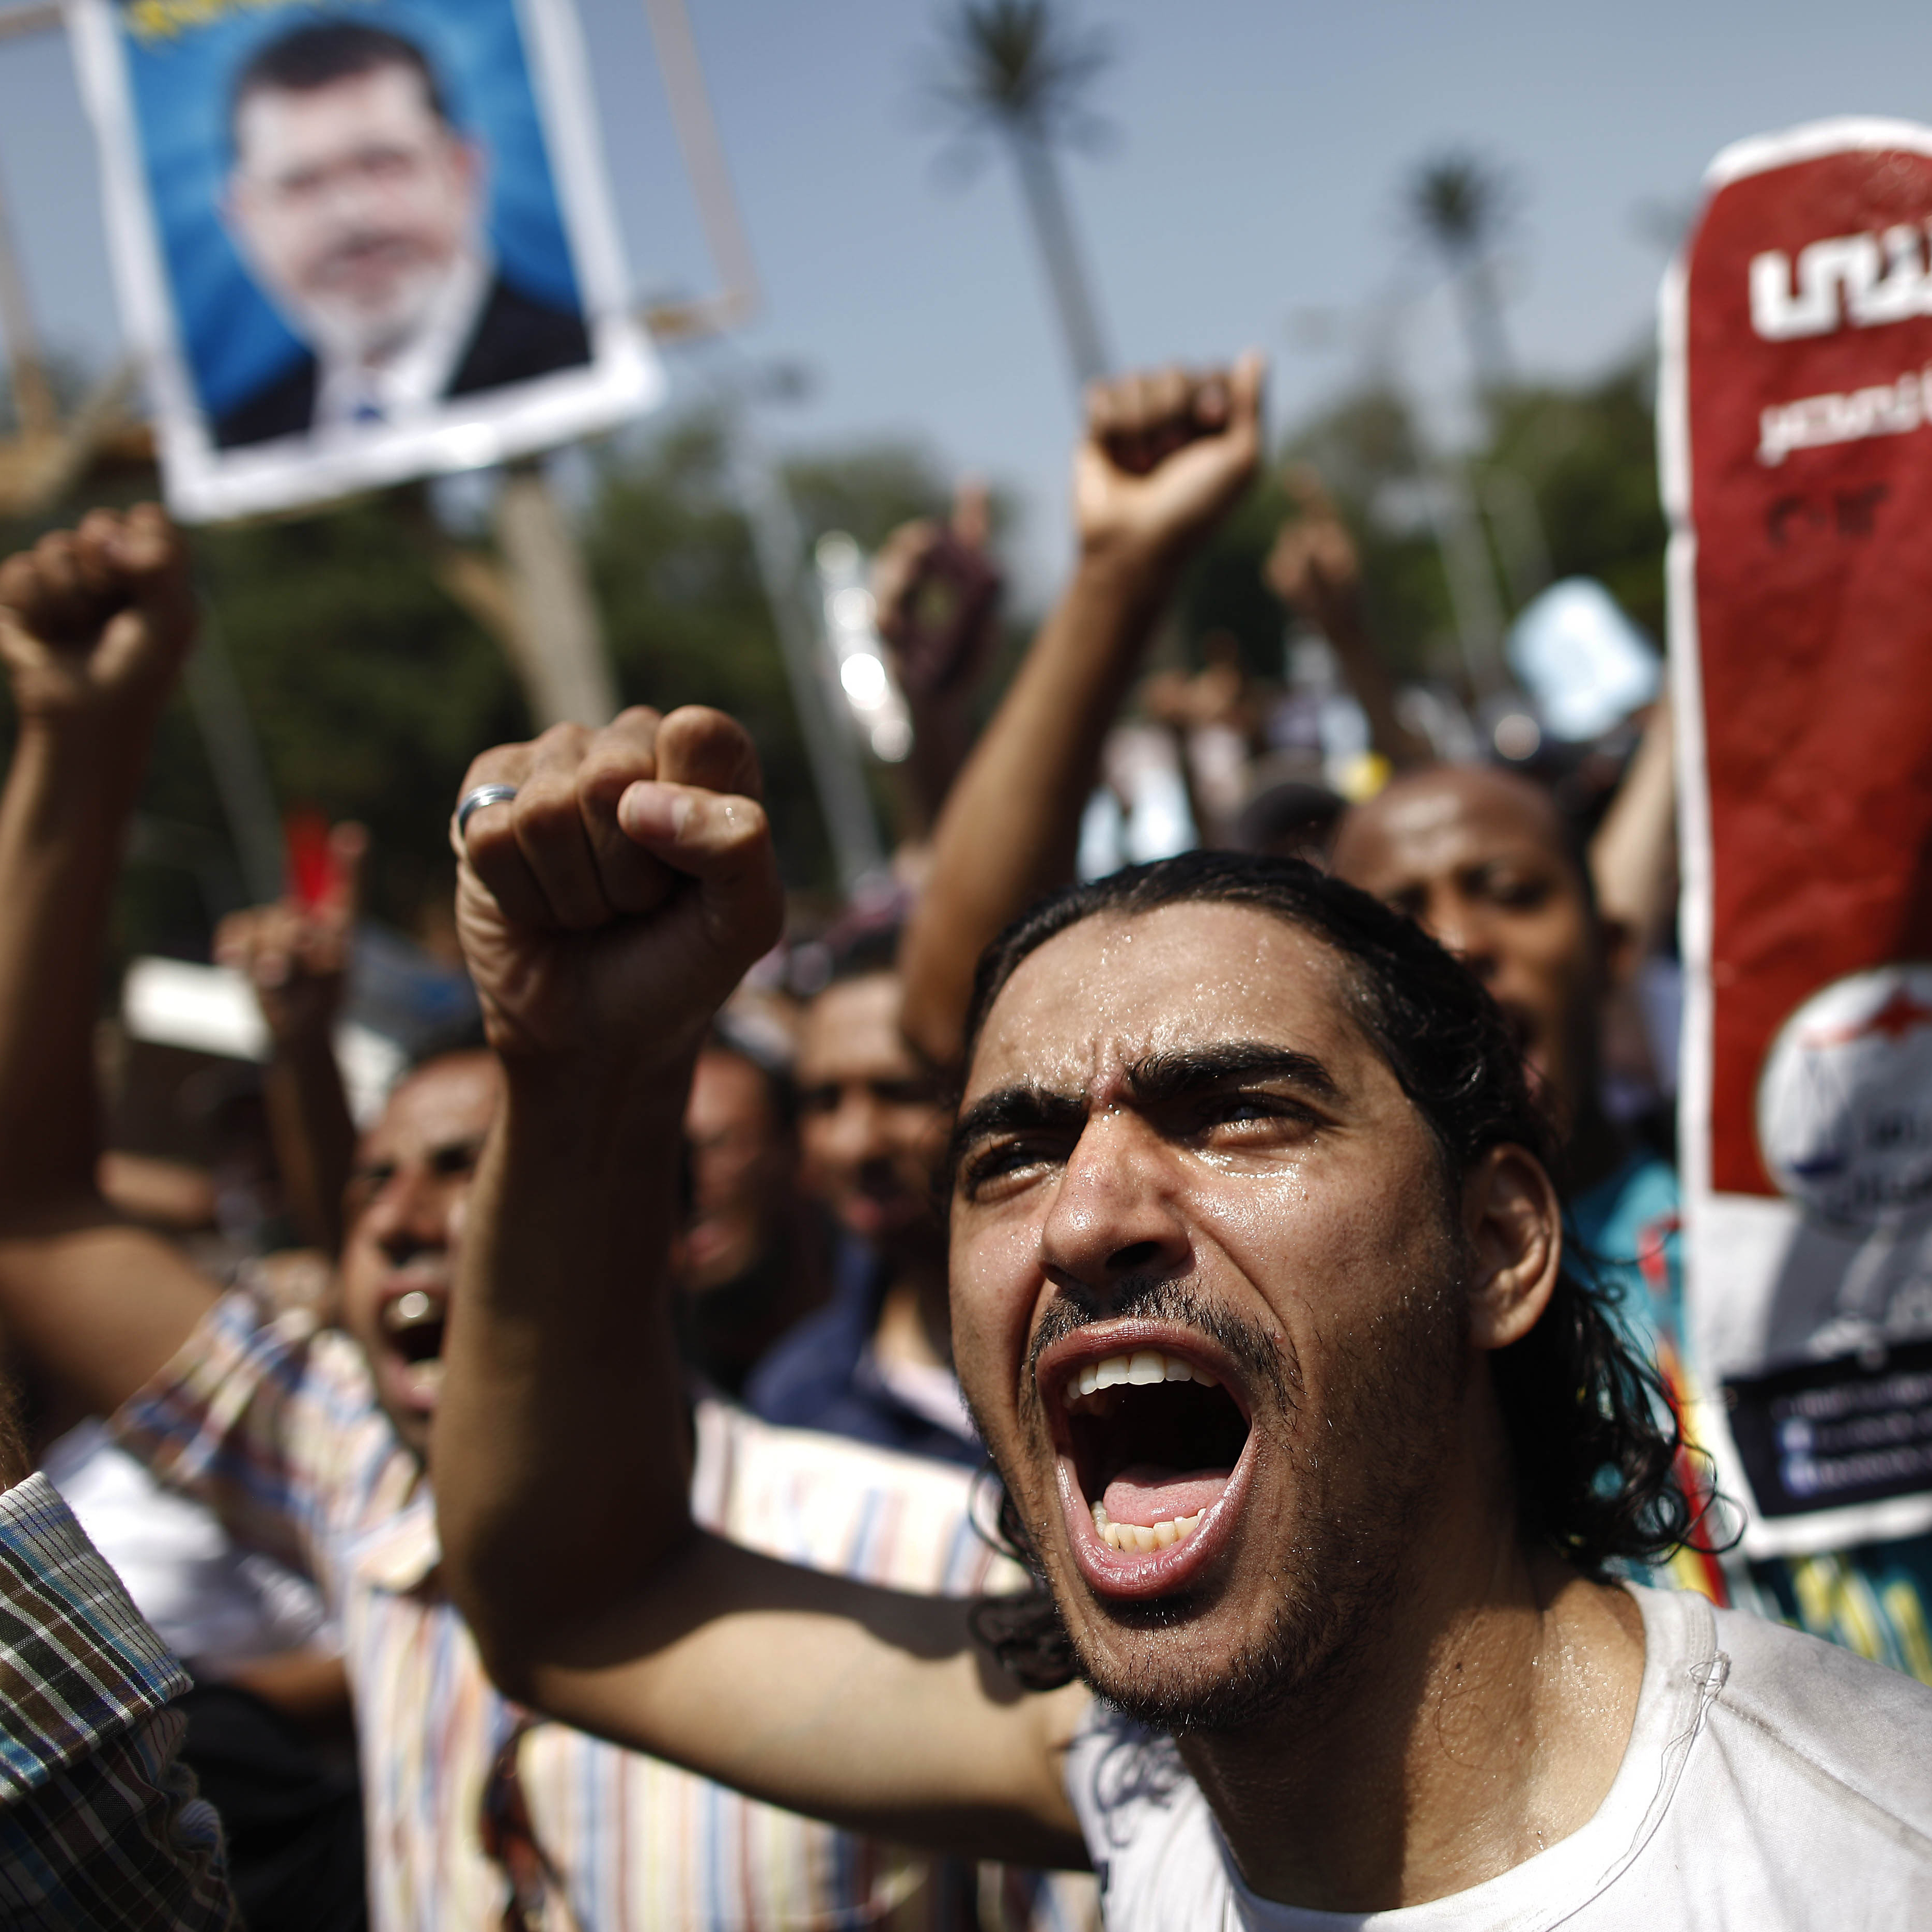 Supporters of the Muslim Brotherhood and ousted President Mohammed Morsi during one of Friday's protests in Cairo.